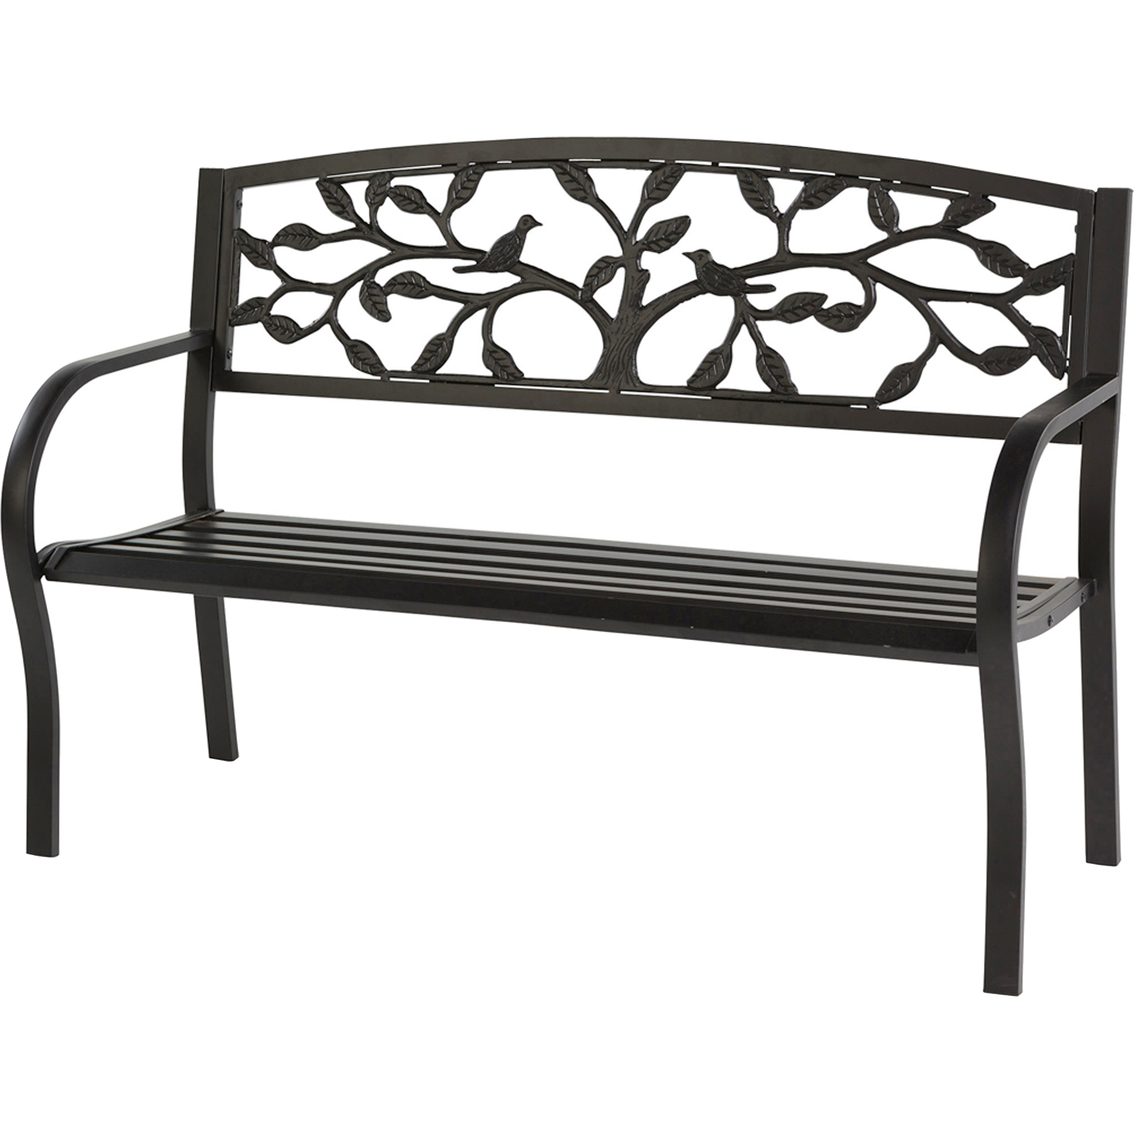 Evergreen Tree Of Life Metal Garden Bench | Benches | Patio With Tree Of Life Iron Garden Benches (View 6 of 25)